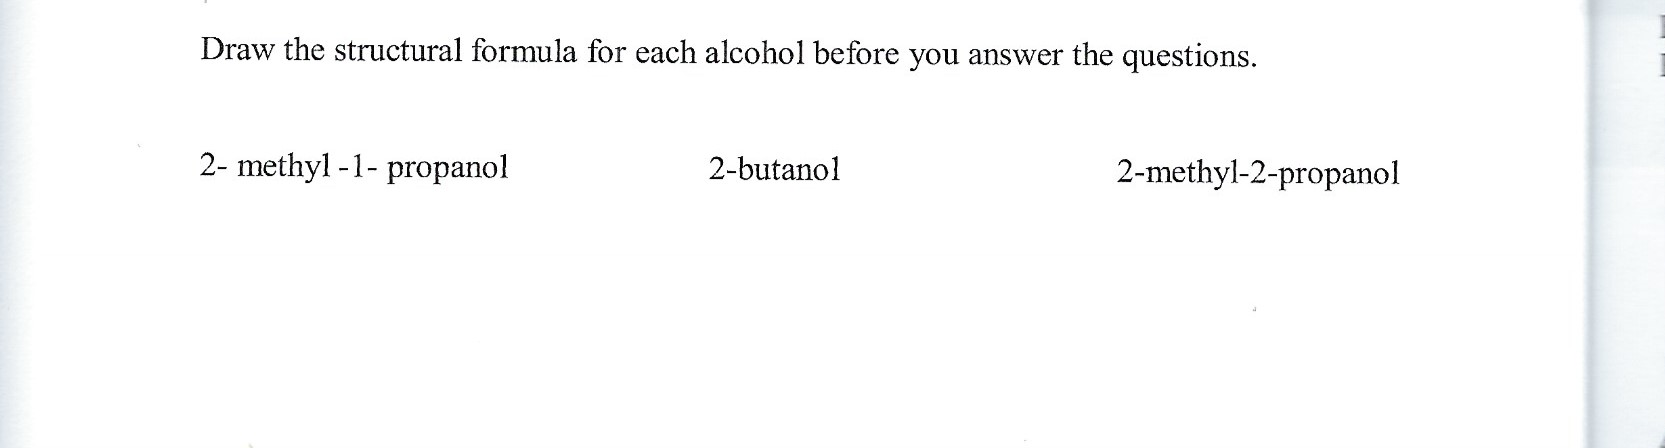 Draw the structural formula for each alcohol before you answer the questions. 2- methyl -1- propanol 2-butanol 2-methyl-2-propanol